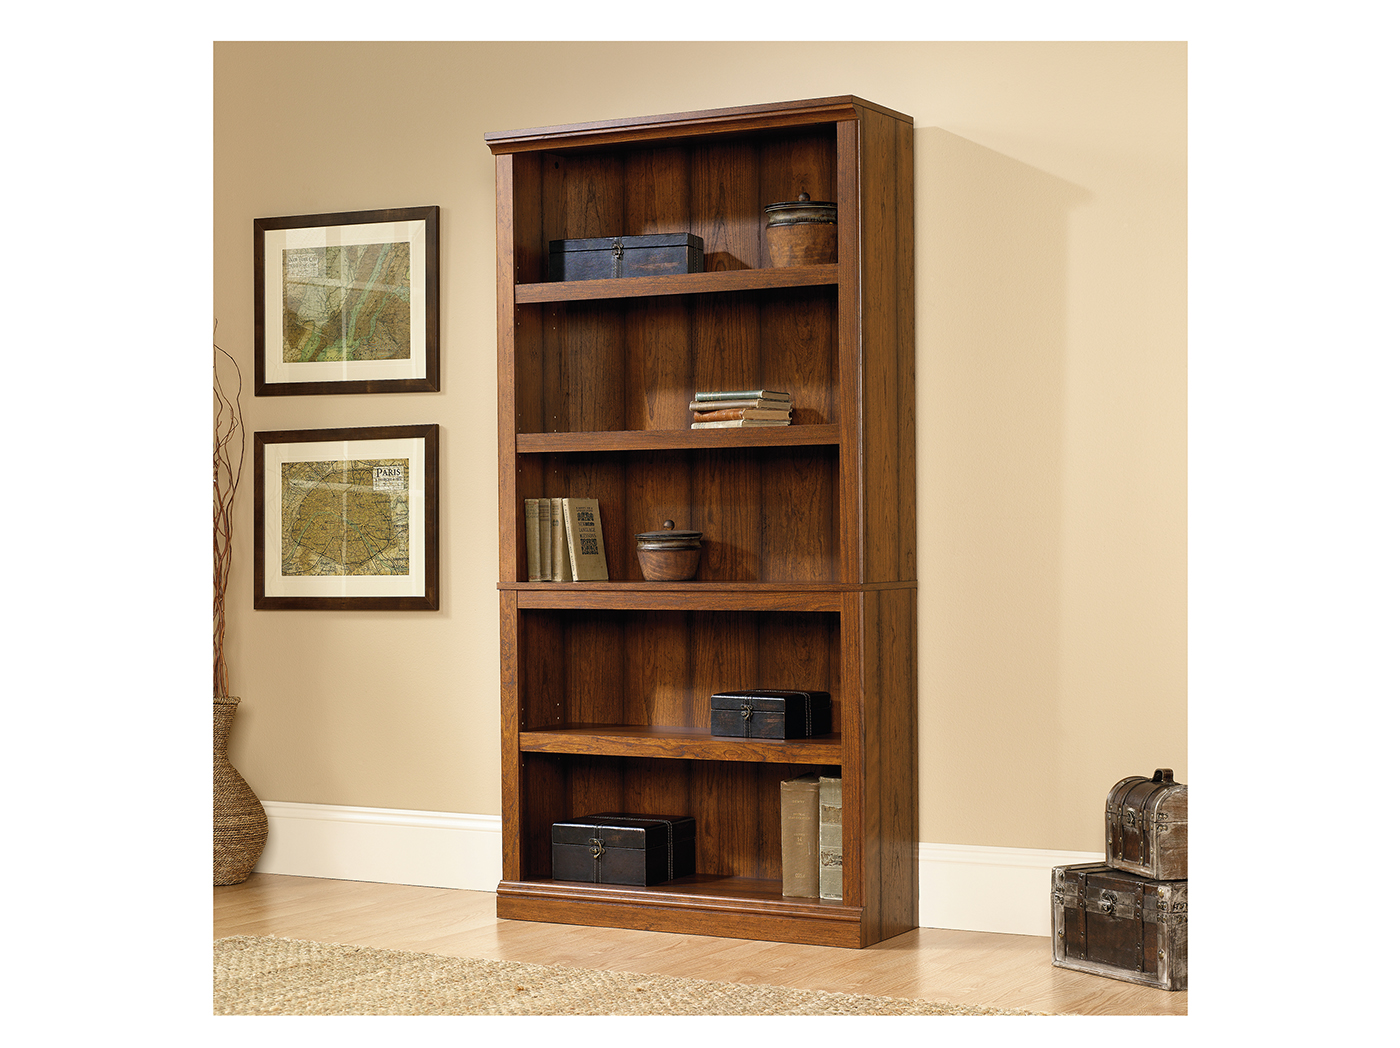 Sauder Select Washington Cherry 5 Shelf Bookcase